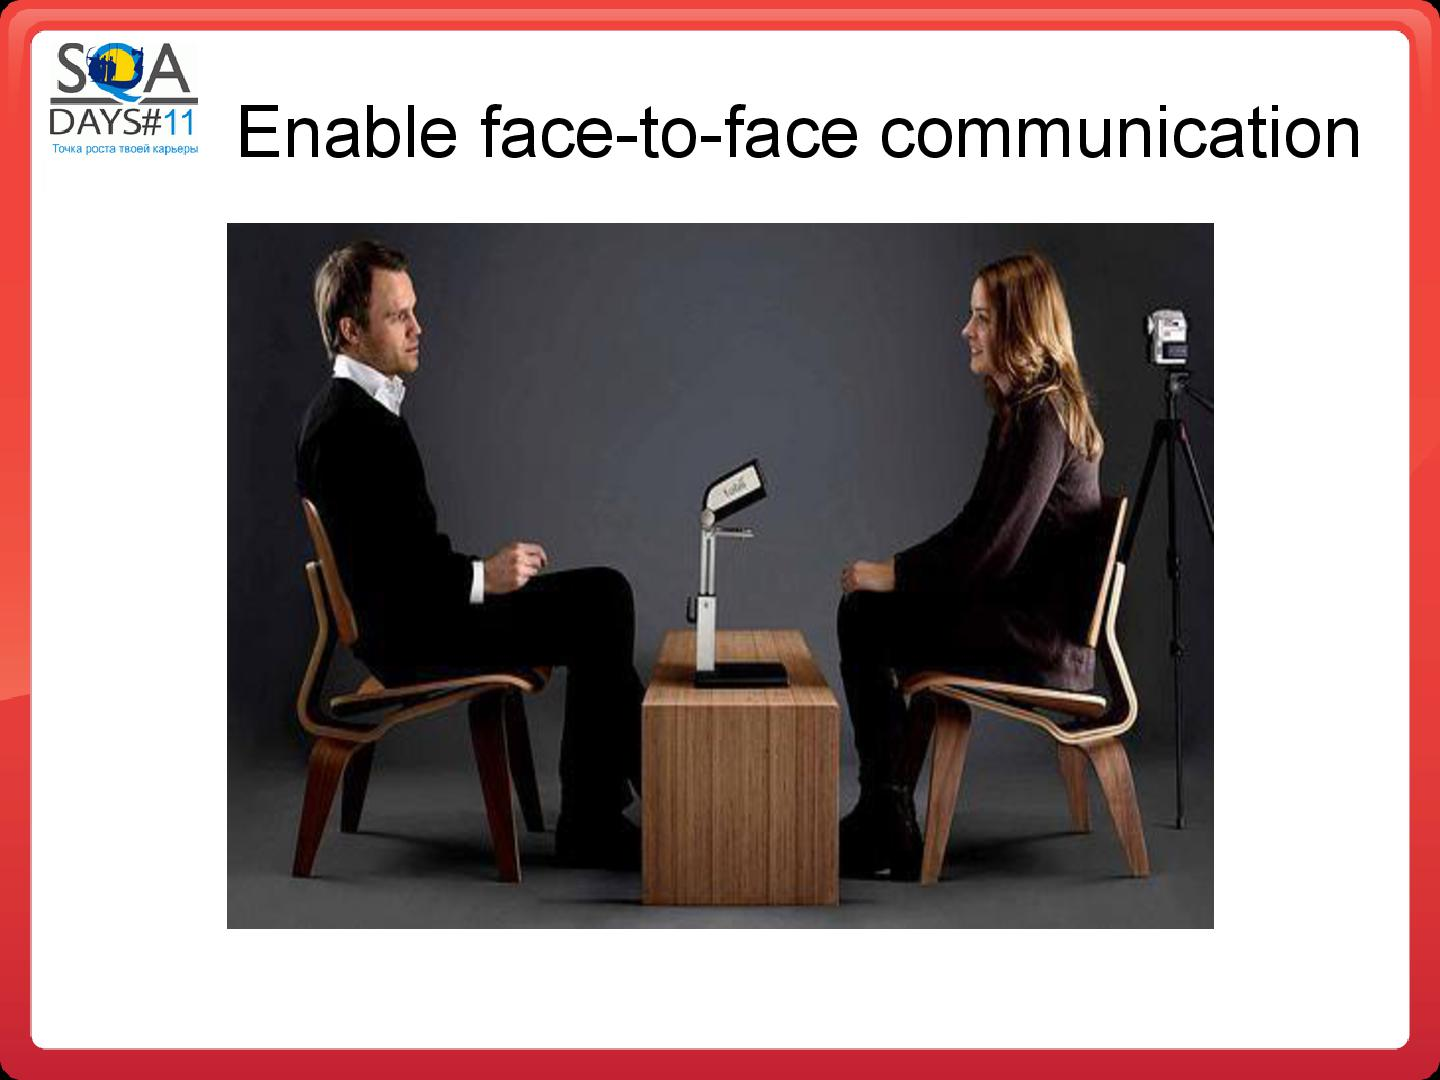 should email replace face to face communications in While email is great for speed and convenience, saves a lot of money in travel, has easy access for all and helps us touch base with many people, e-mail is not the better alternative to face-to-face communication within businesses.